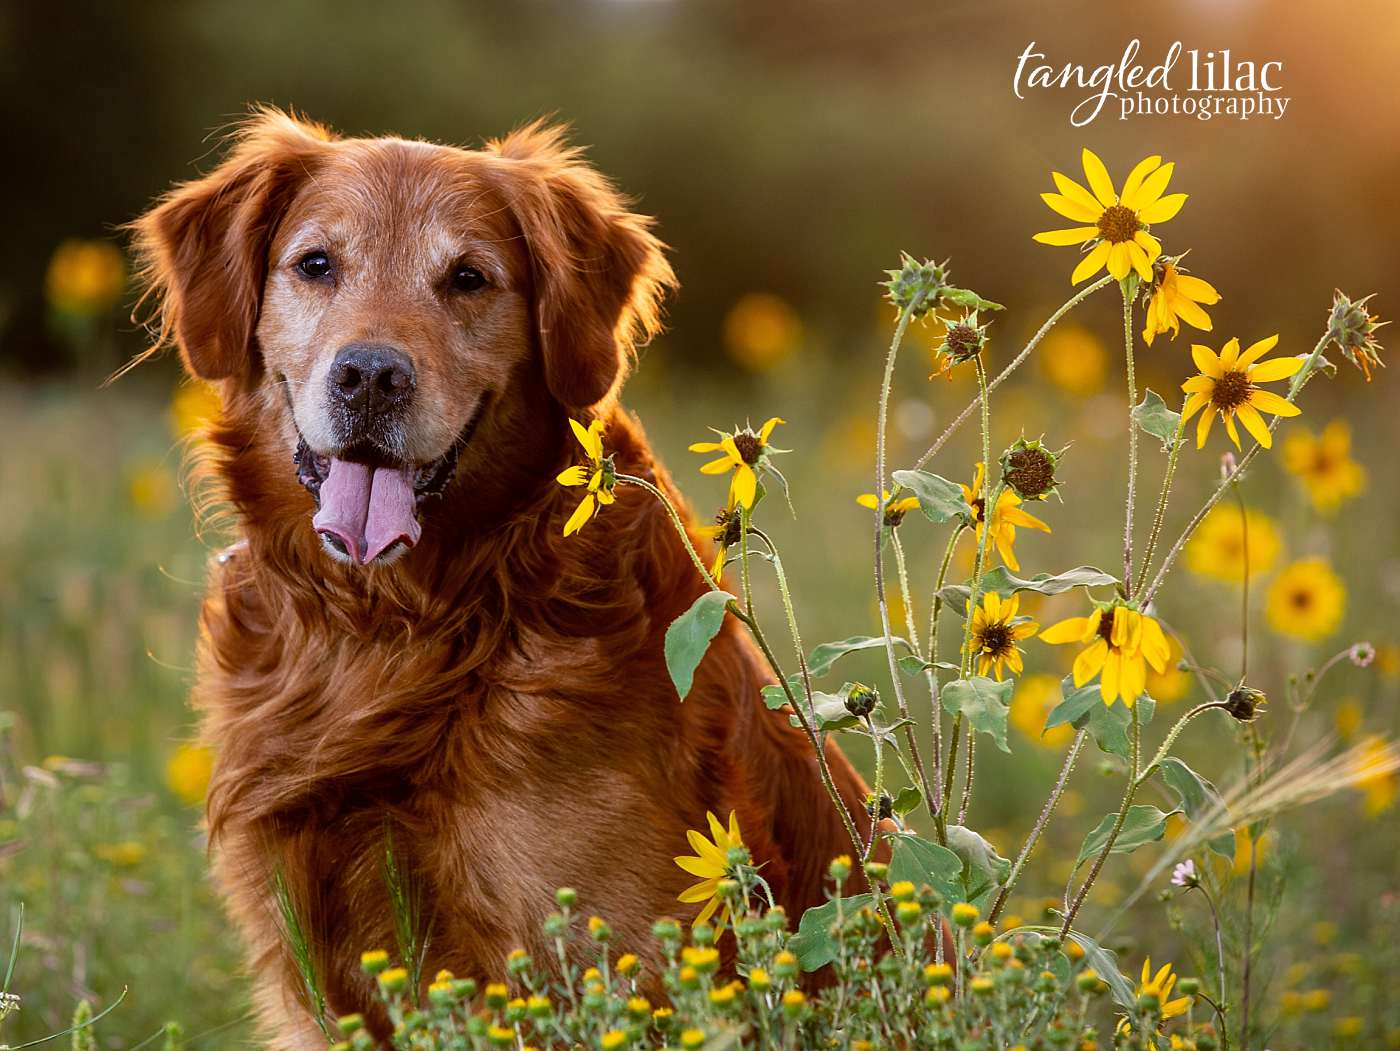 Old Mature Golden Retriever dog in sunflowers smiling at dog photographer golden hour